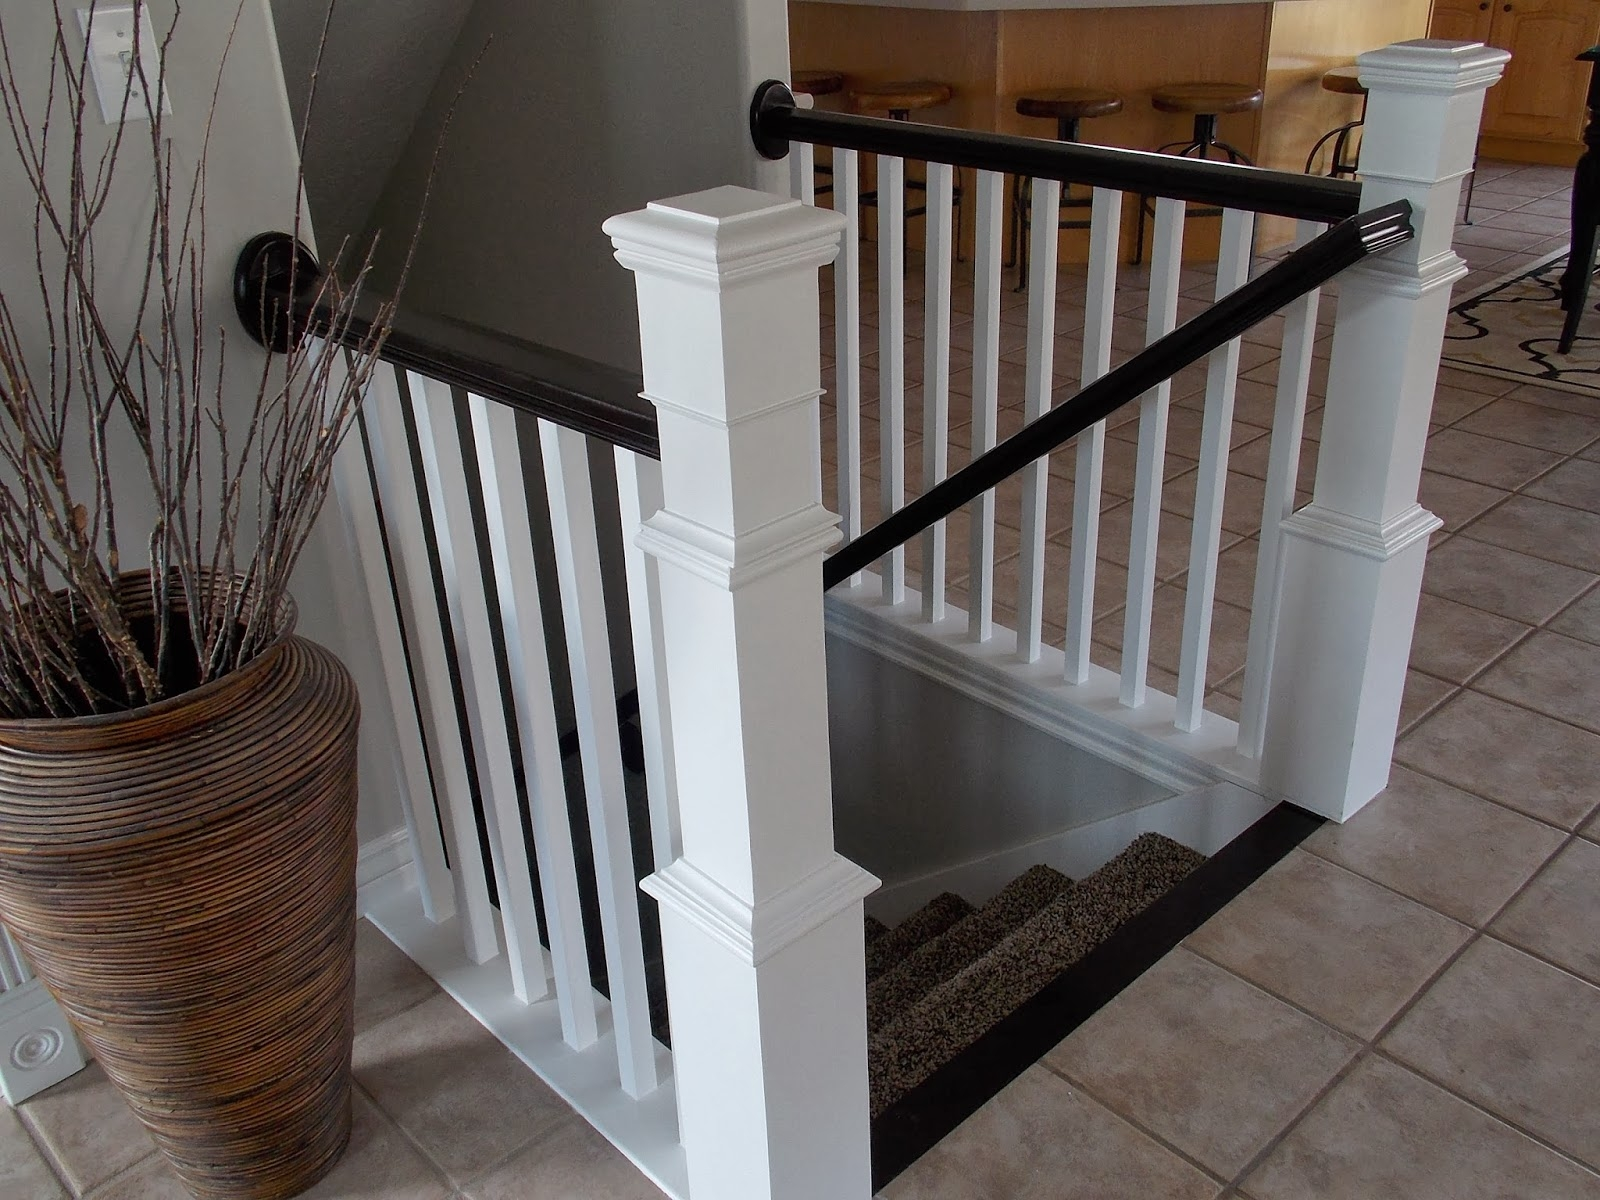 Remodelaholic Stair Banister Renovation Using Existing Newel | Top Of Stairs Banister | High End | Indoor | Barn Beam | Redo | Glass